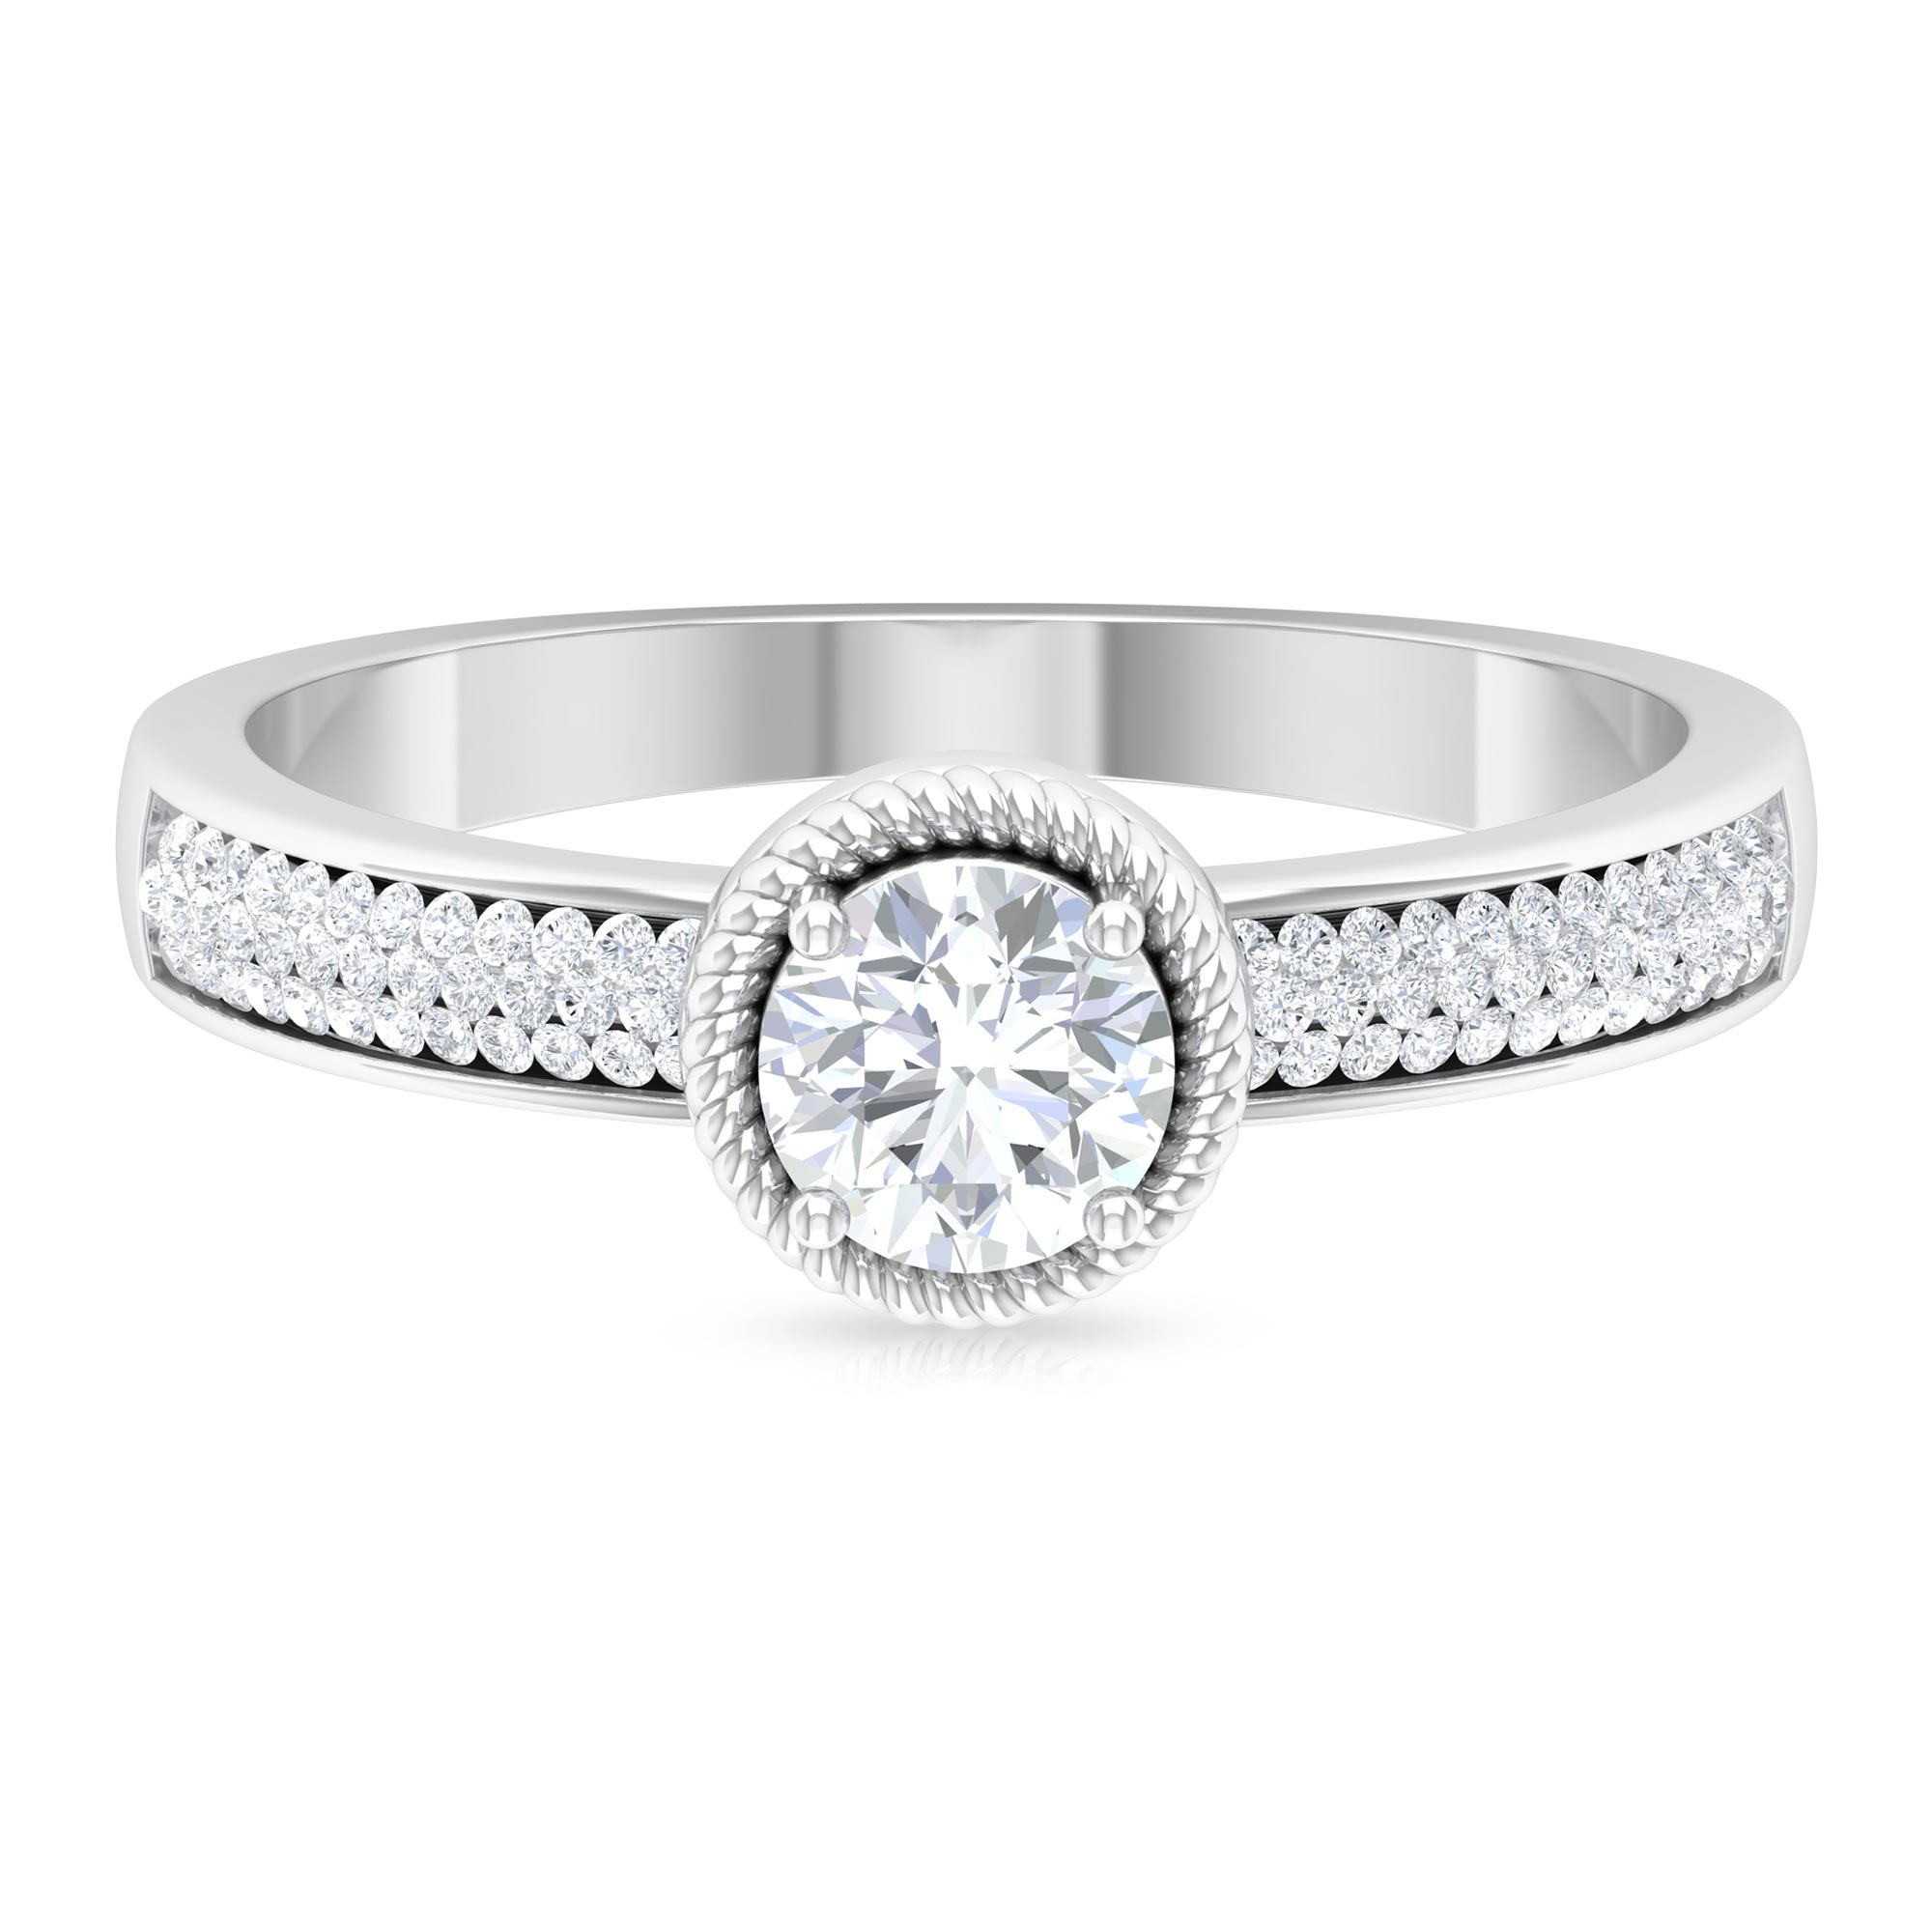 3/4 CT Rope Frame Solitaire Diamond Ring with Pave Set Side Stones